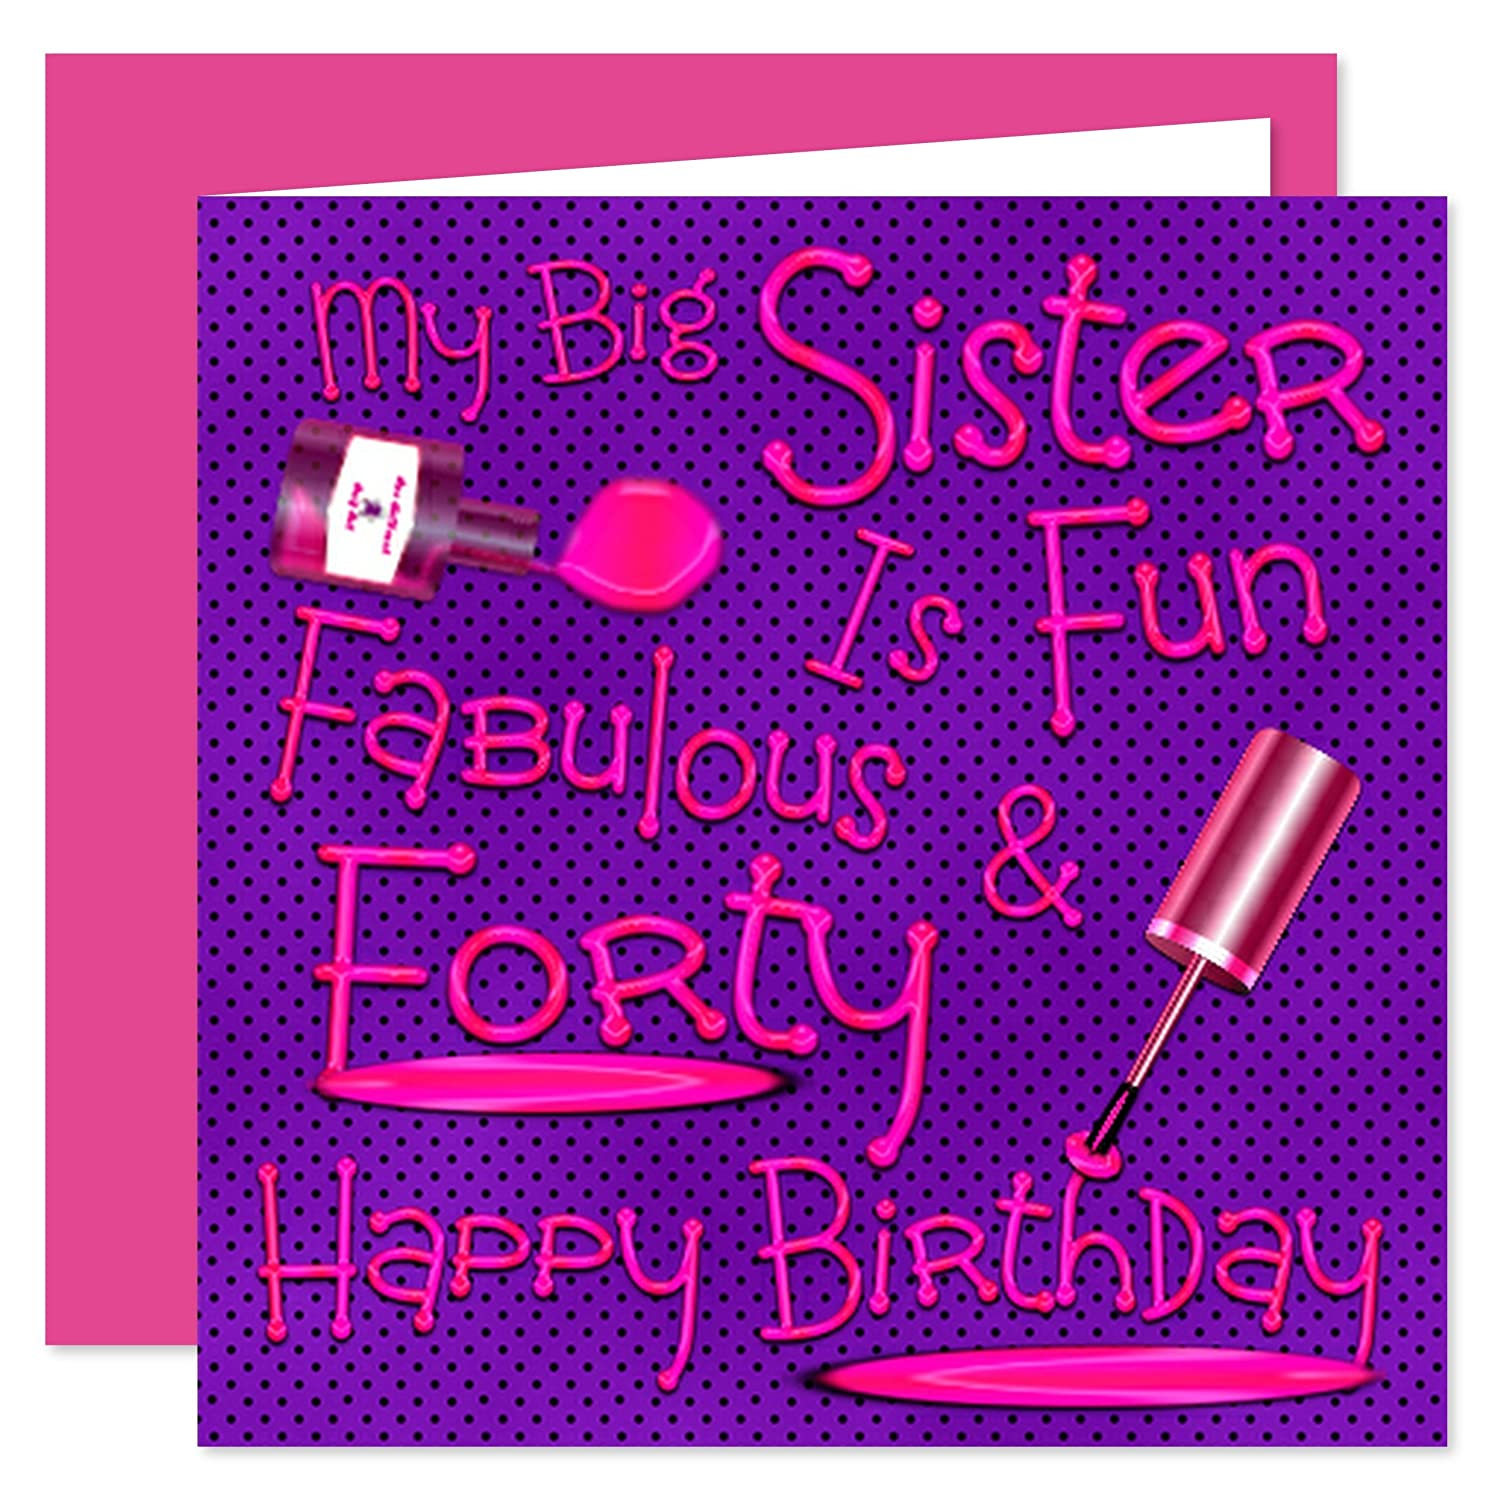 My Big Sister 40th Happy Birthday Card Naughty Nails Fun Design